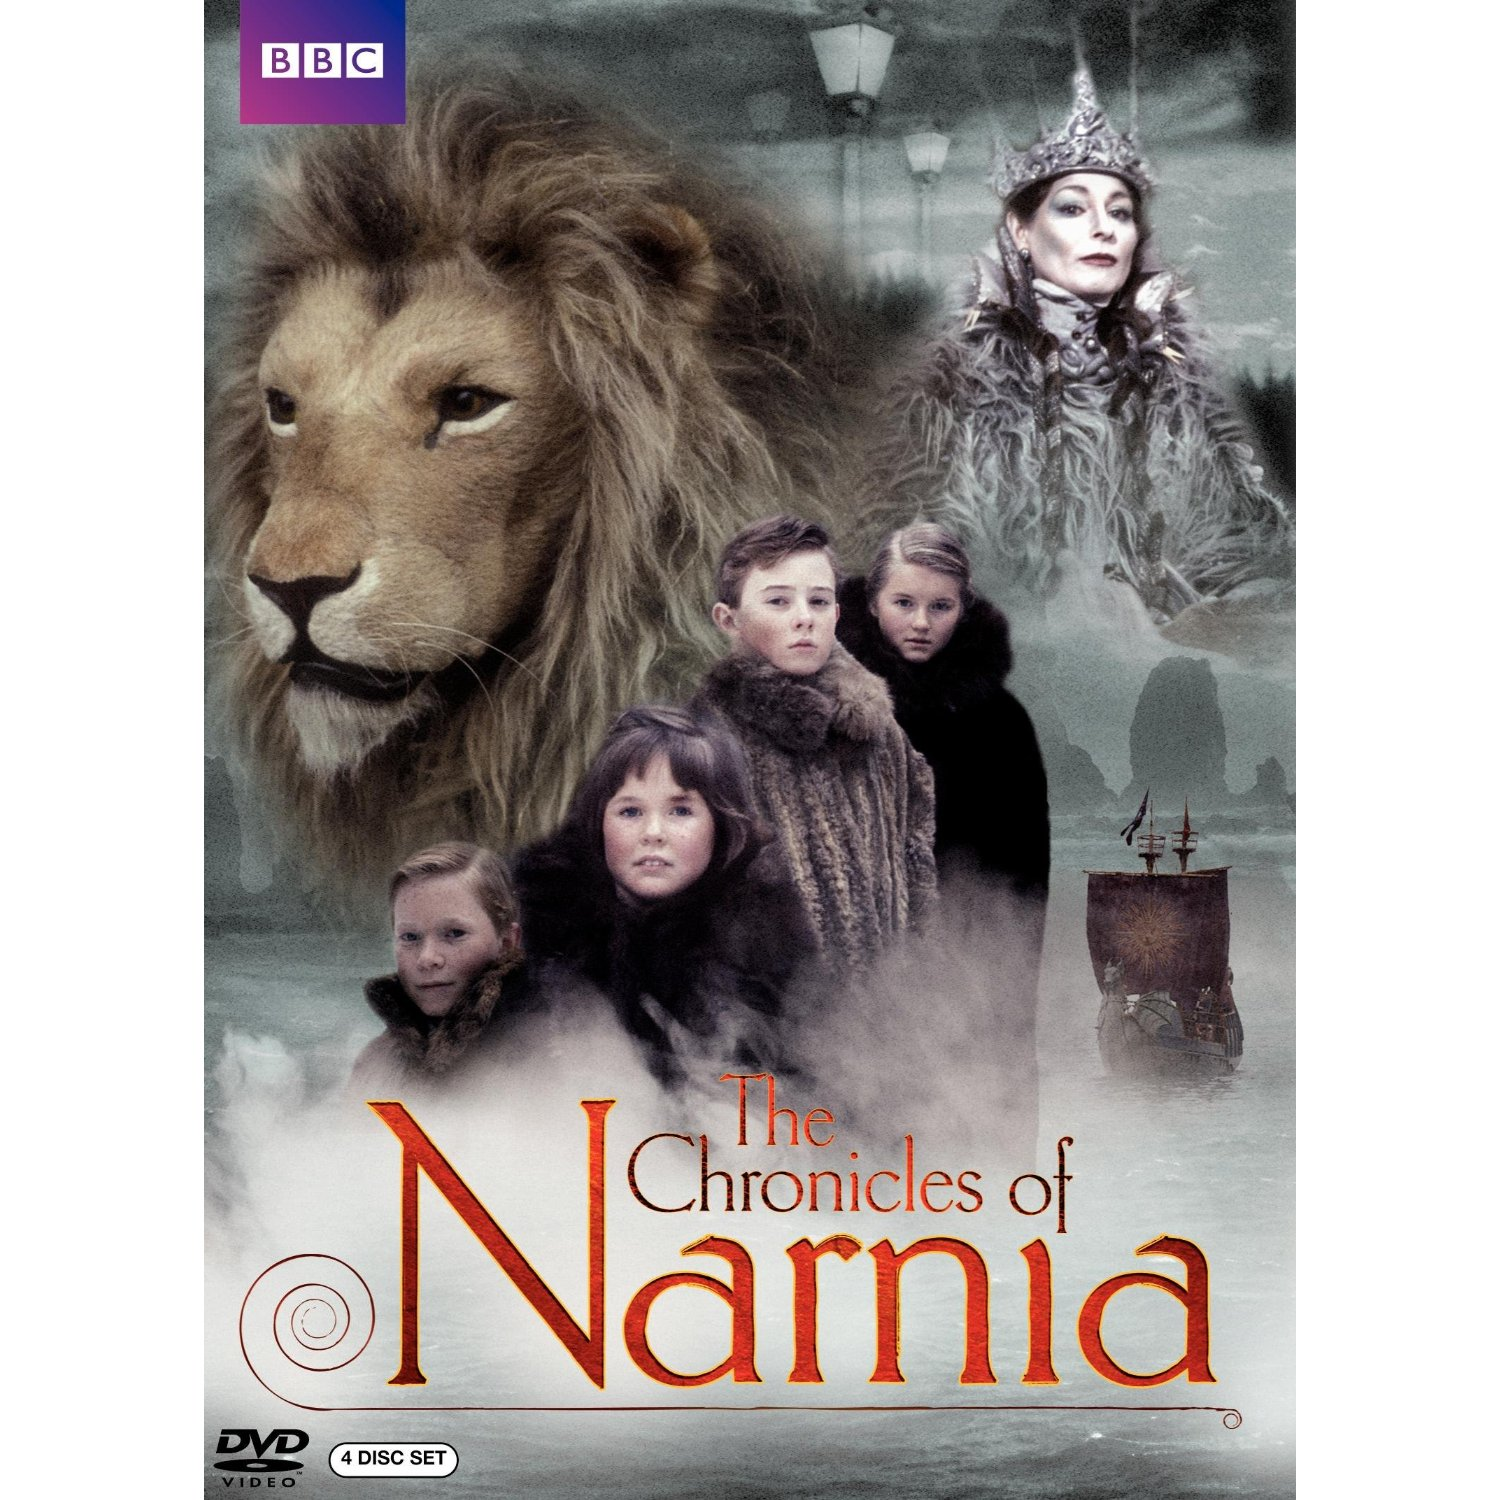 Original Lion Witch And The Wardrobe Movie